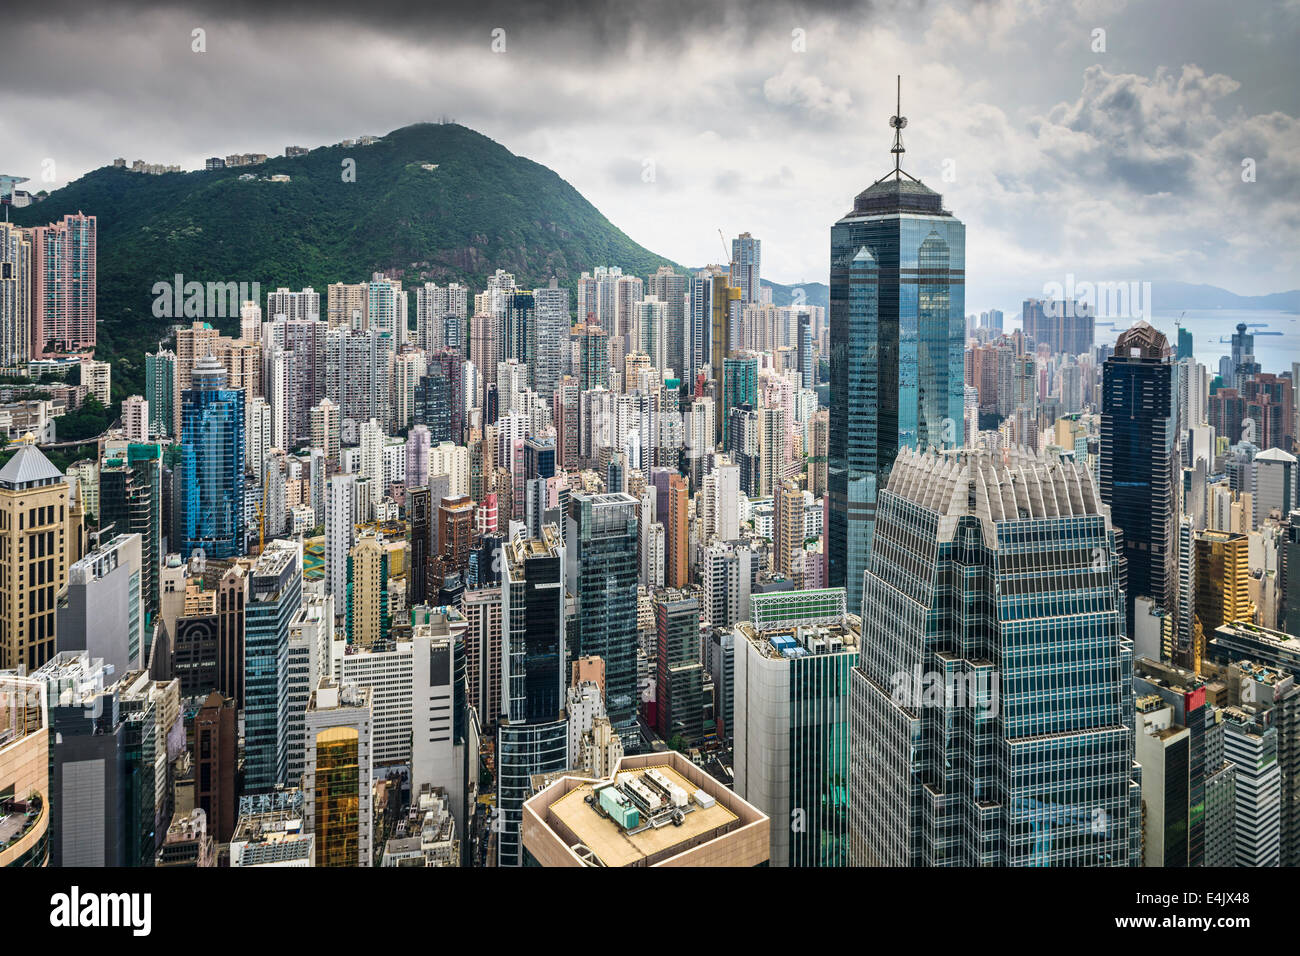 Hong Kong, Chine vue aérienne de la ville au port de Victoria. Photo Stock